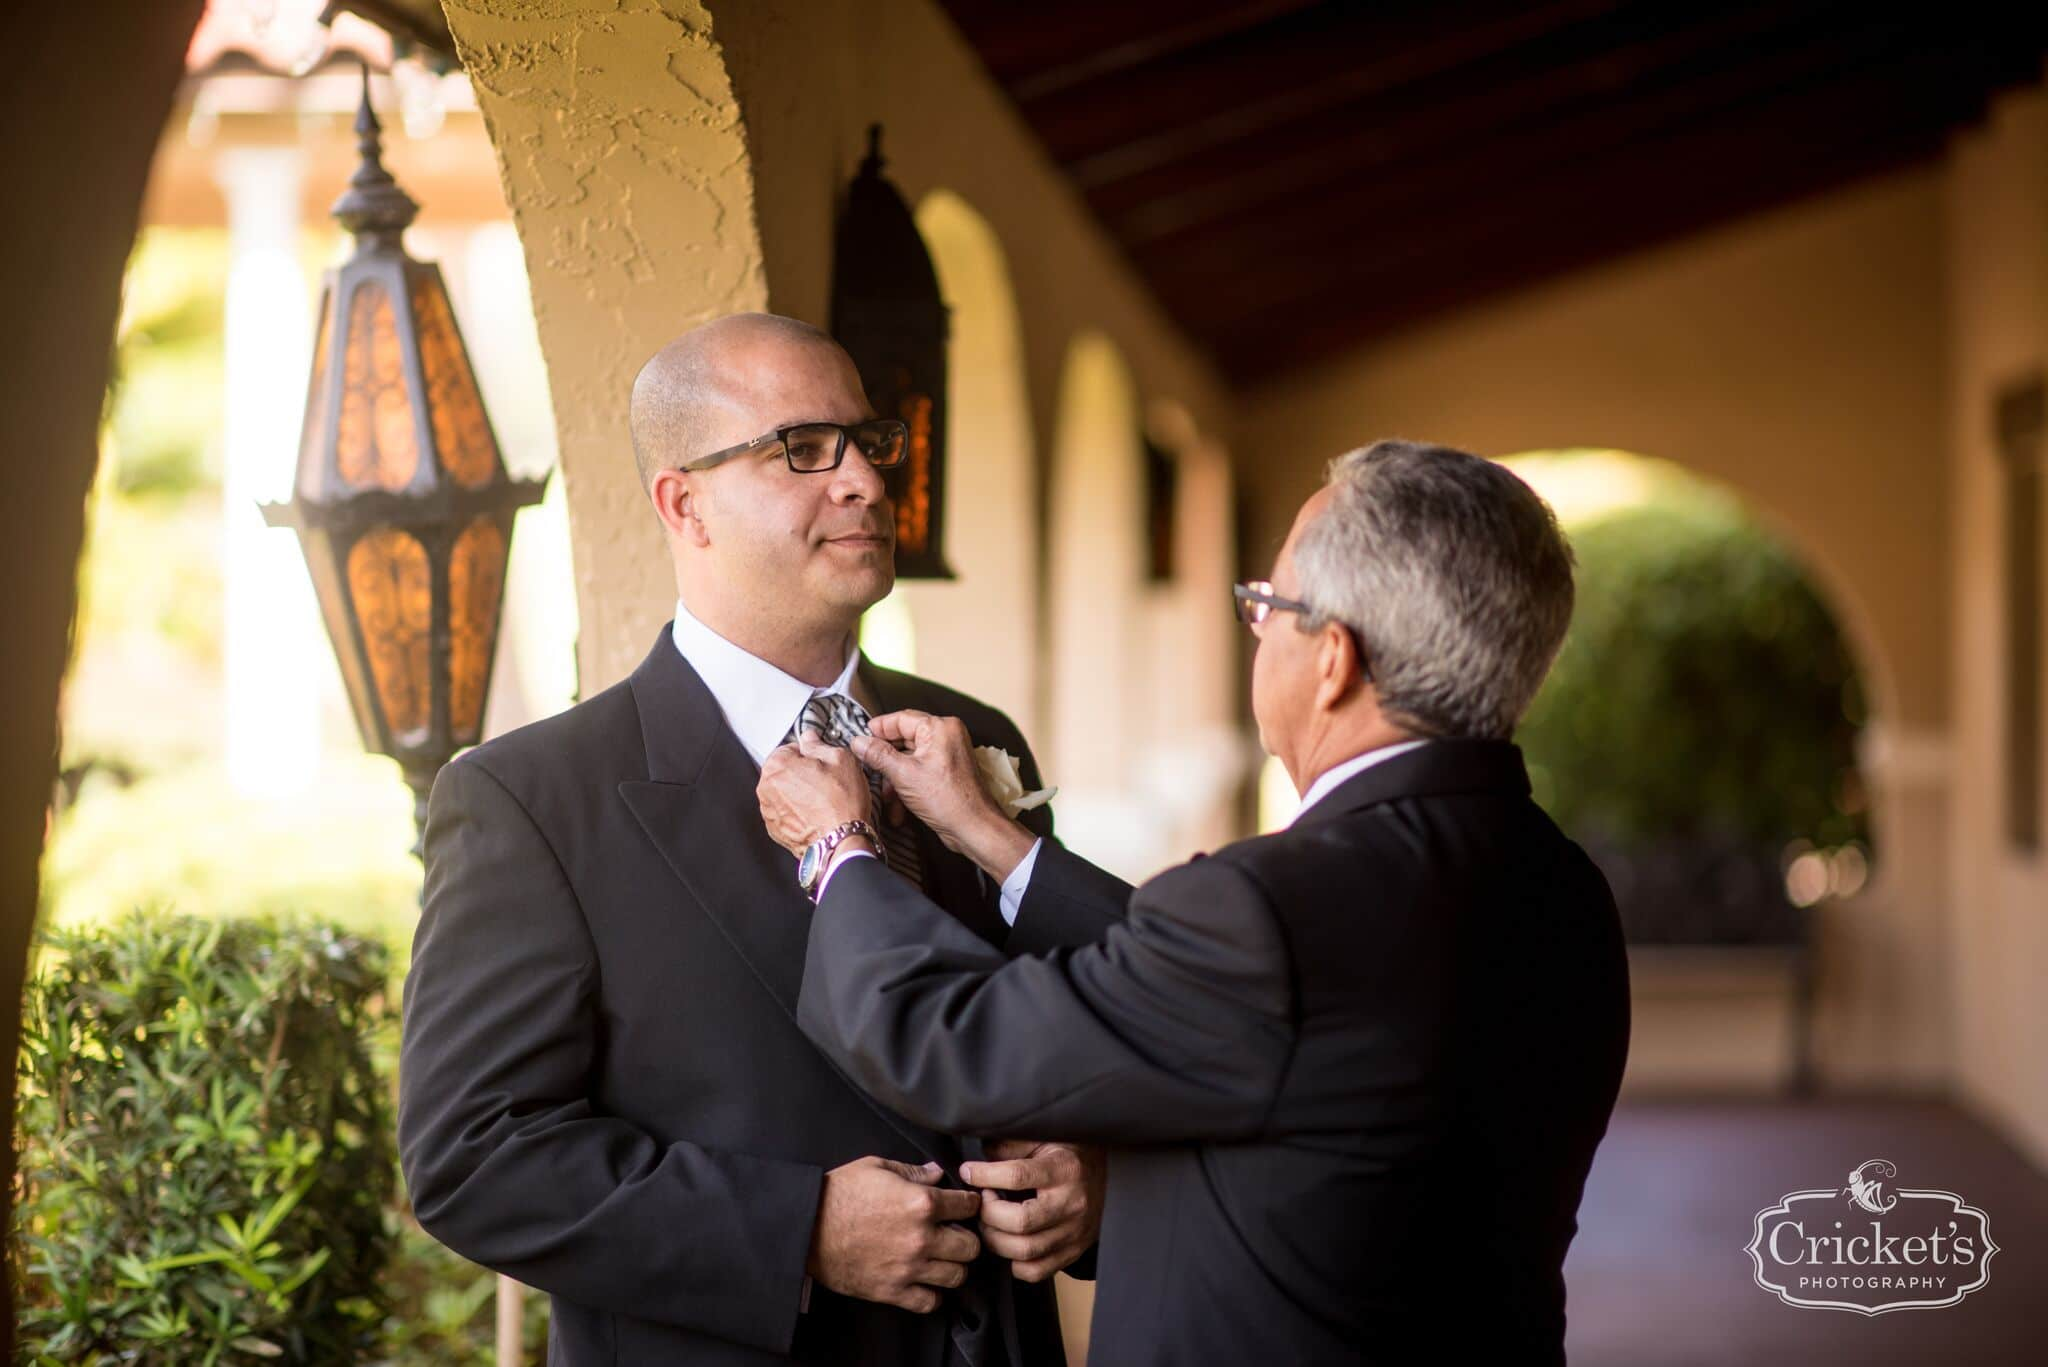 Groom's father adjusting groom's tie